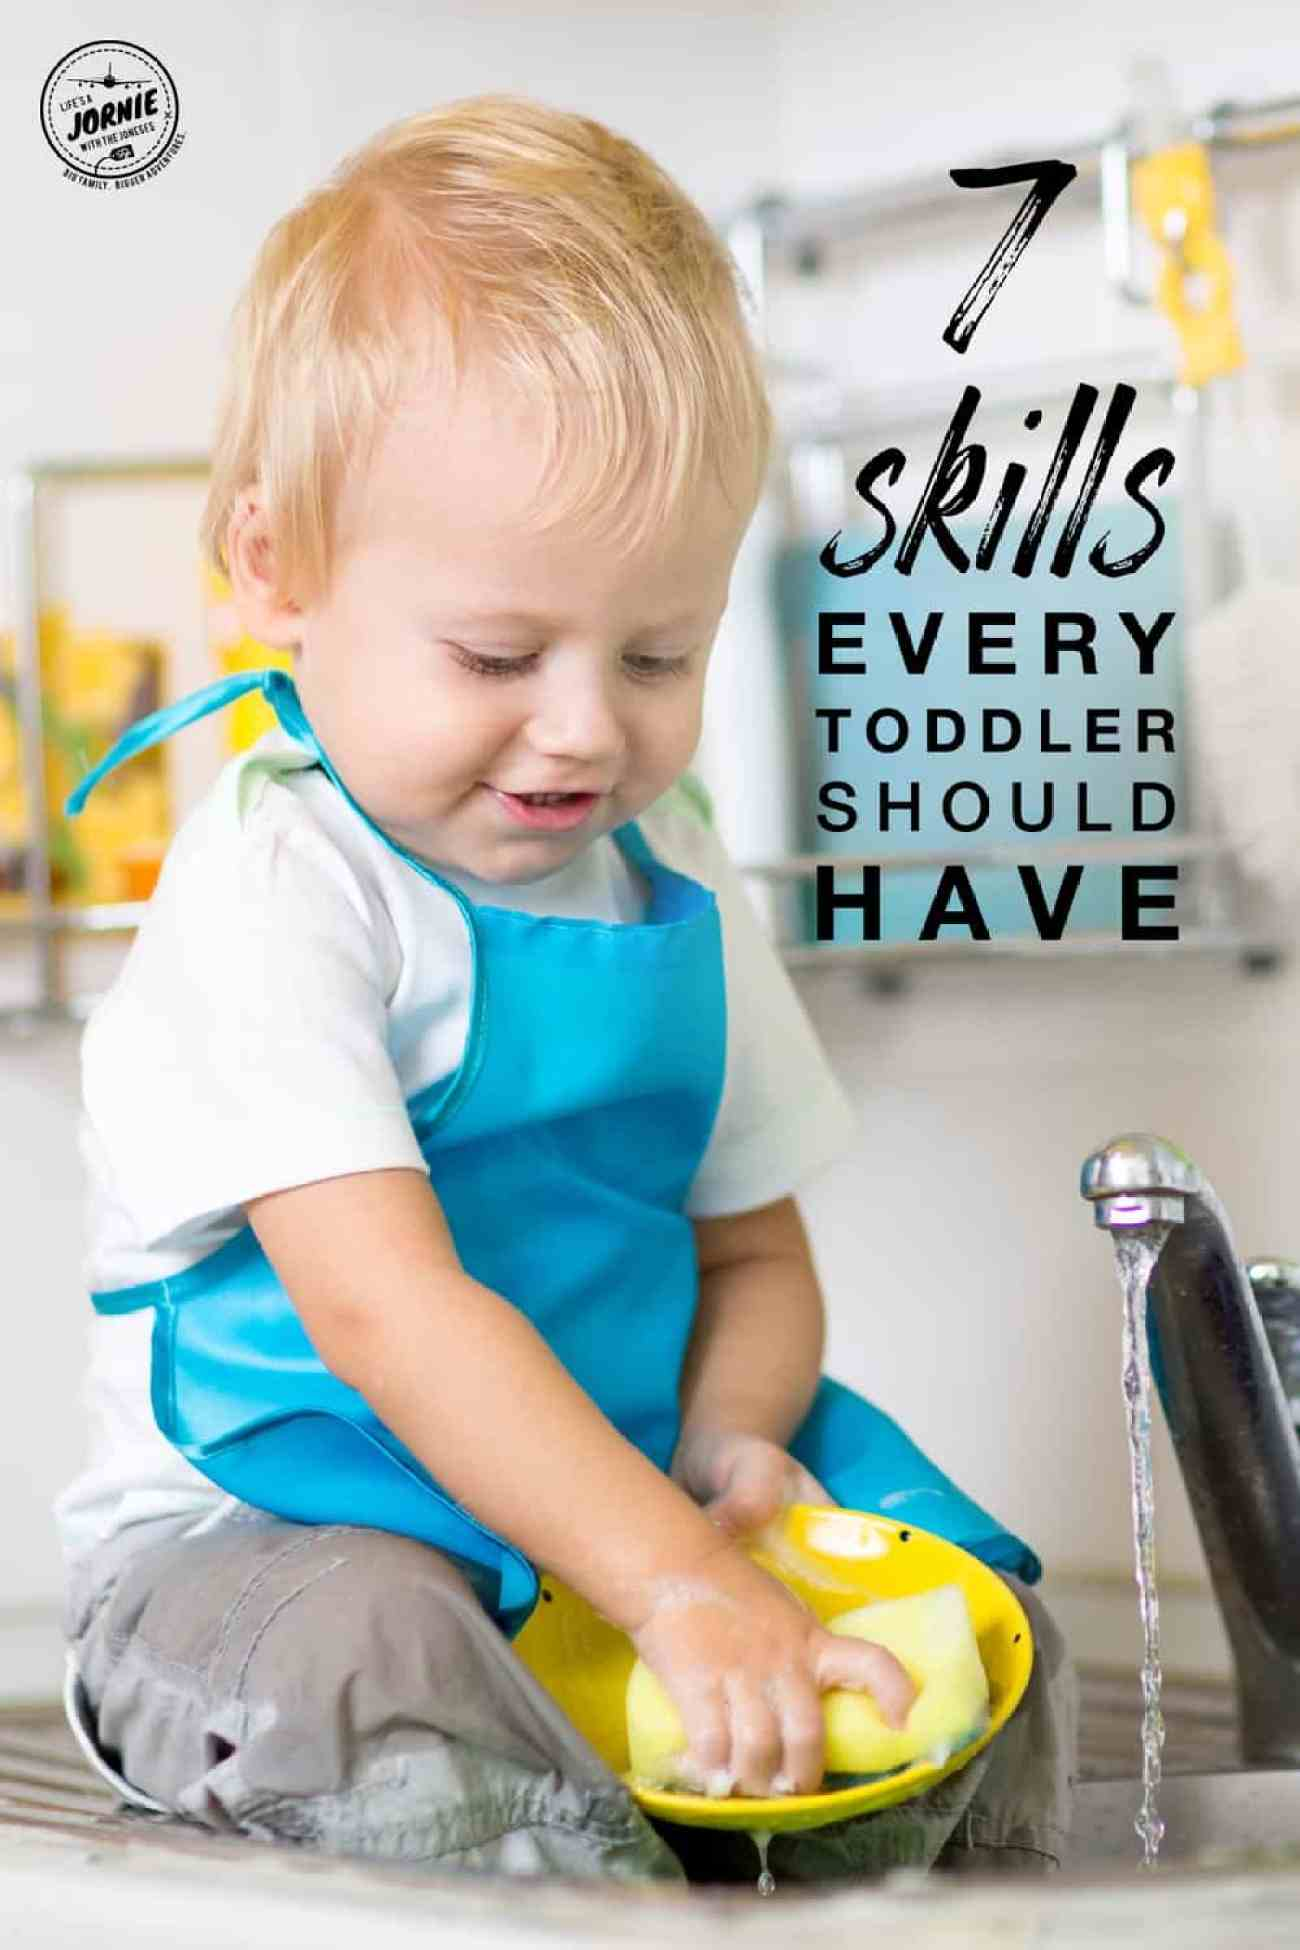 Saving these! Great skills every toddler should learn.